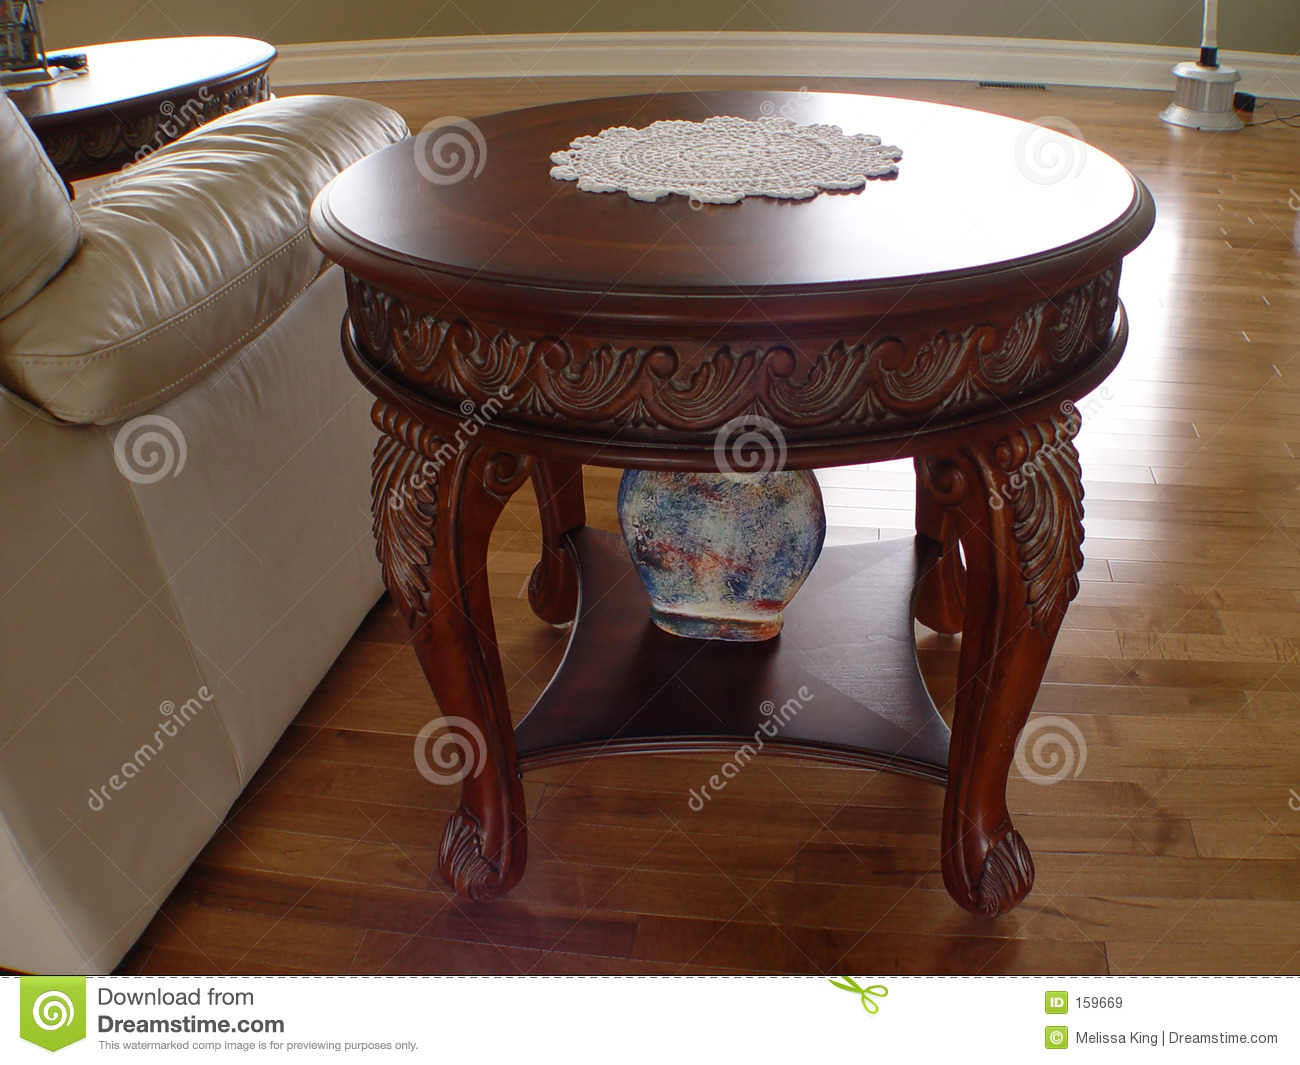 Closeup of Coffee Table